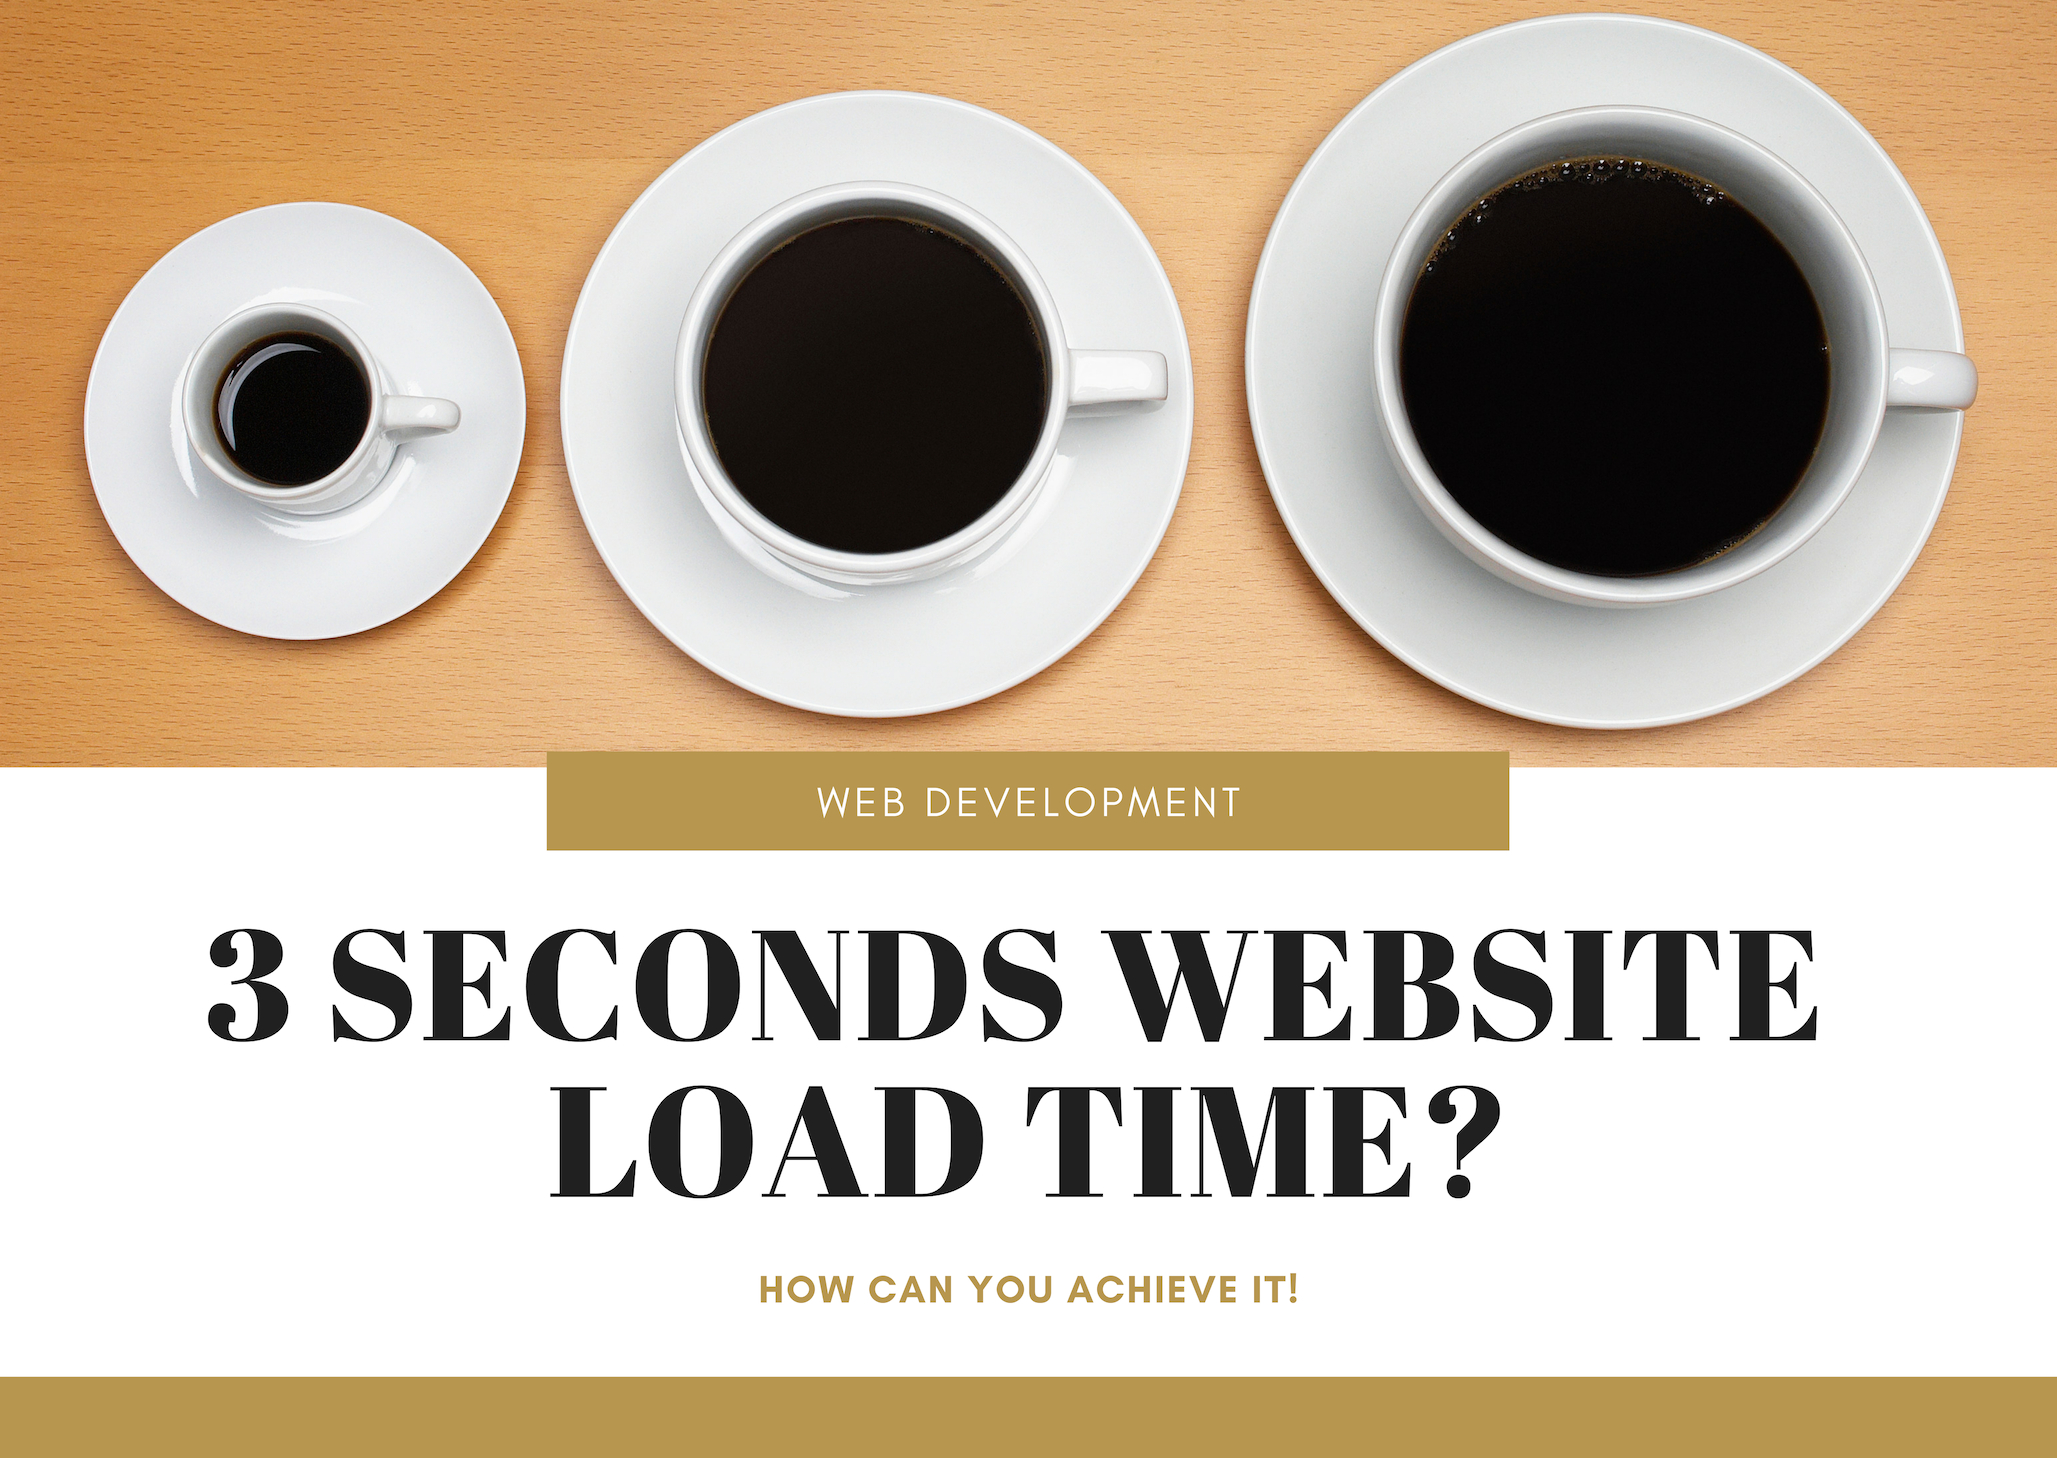 3 Seconds Website Load Time? How Can You Achieve It!